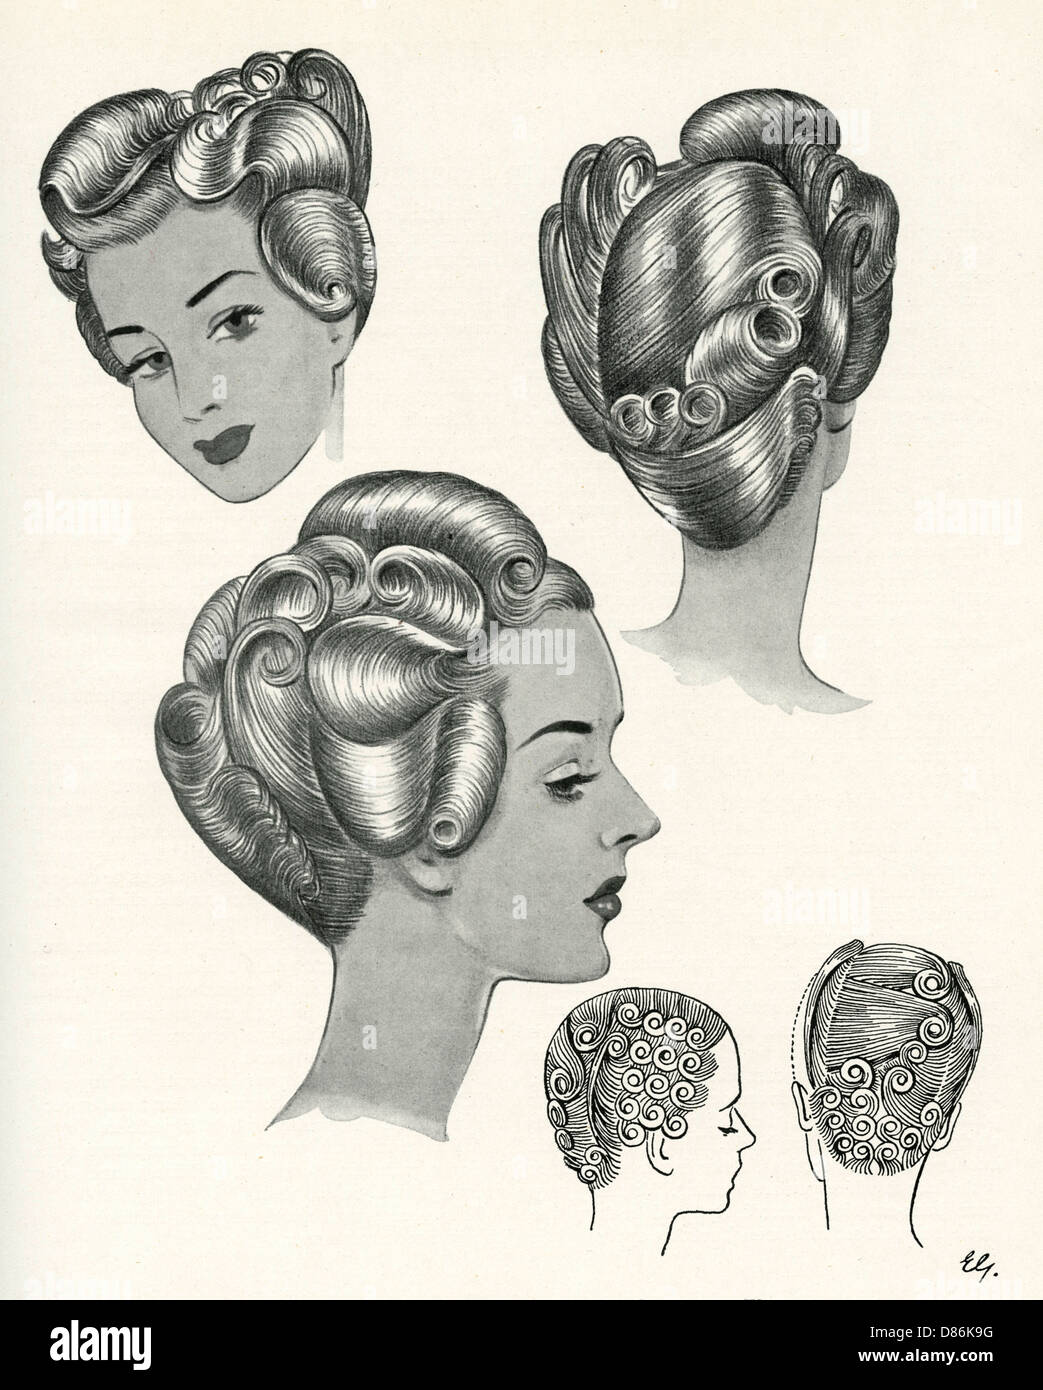 40s Hairstyles Stock Photos 40s Hairstyles Stock Images Alamy